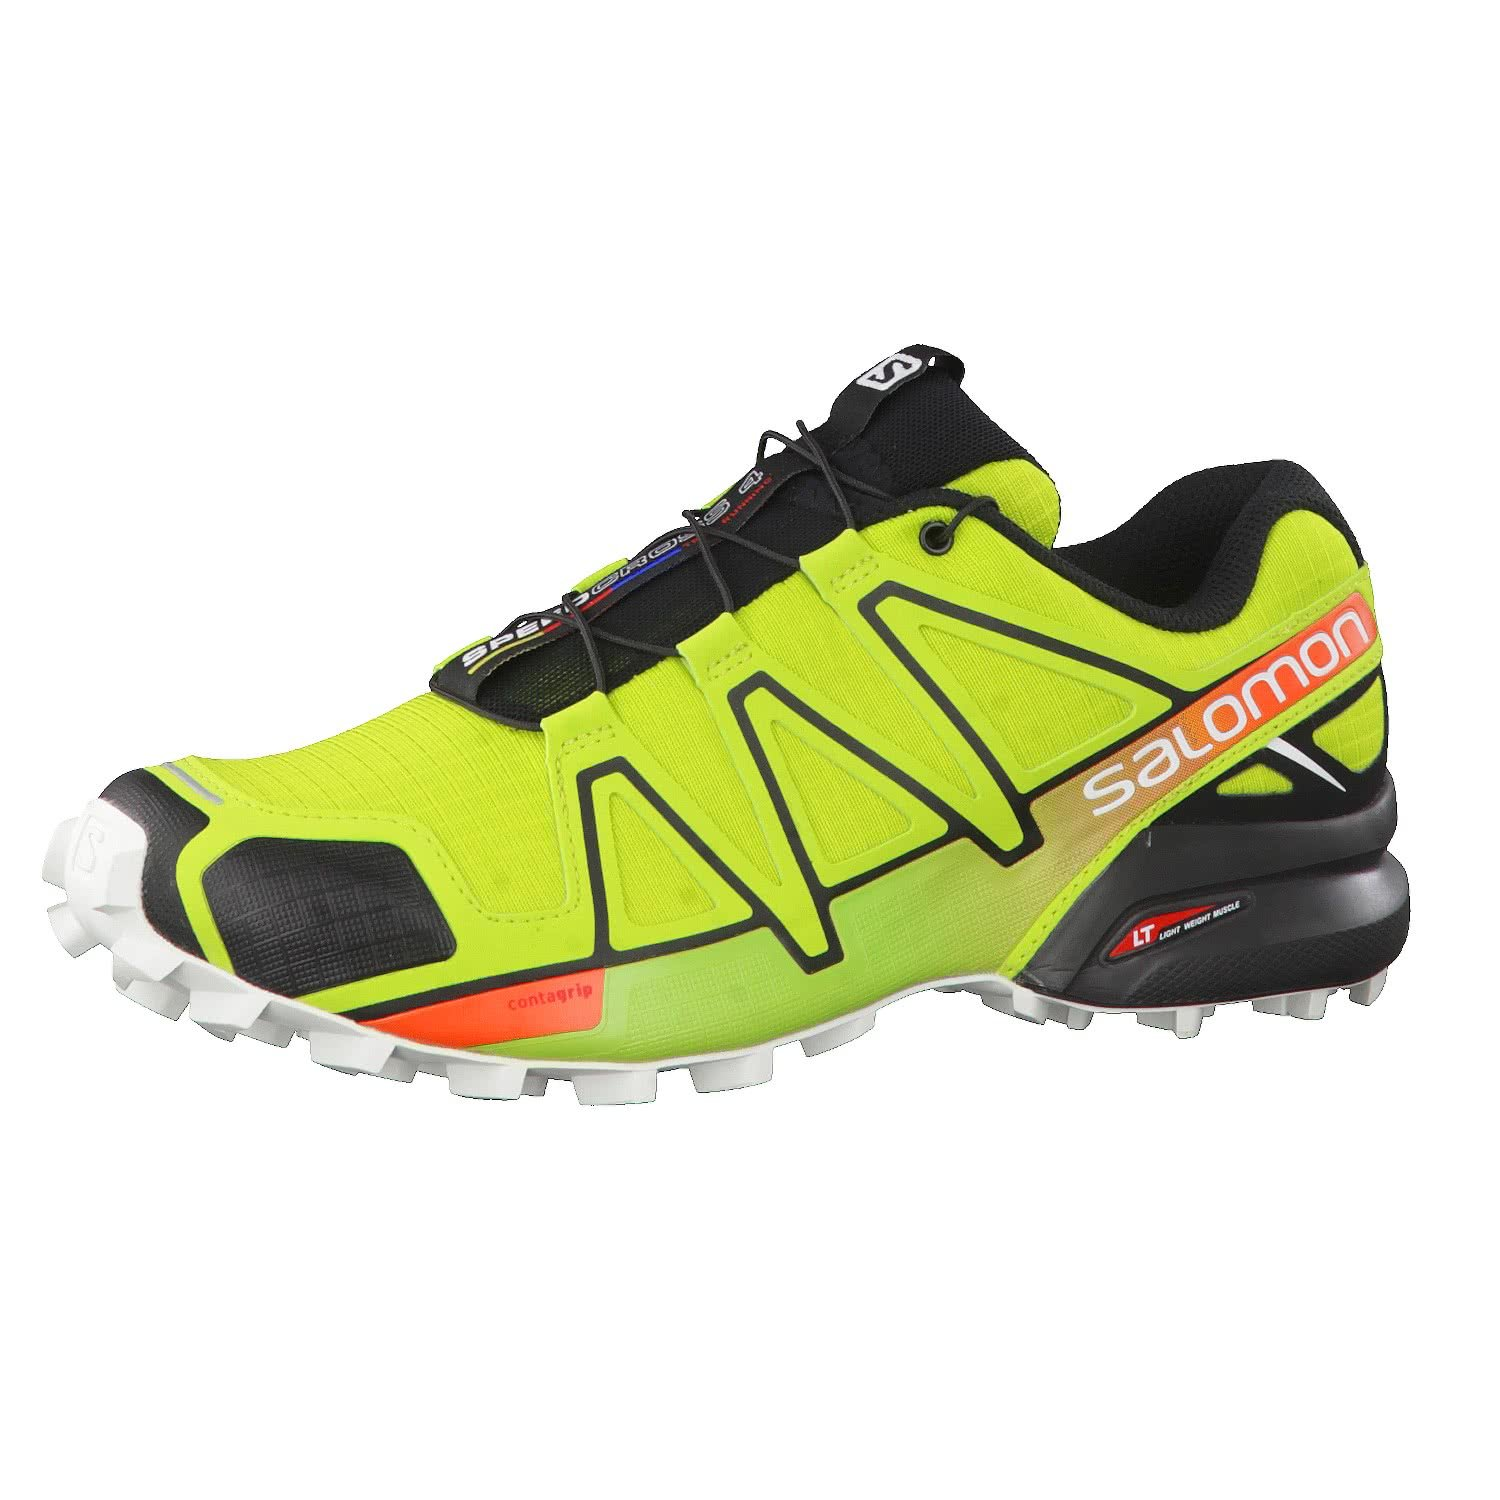 salomon men's speedcross 3 trail running shoe review qatar